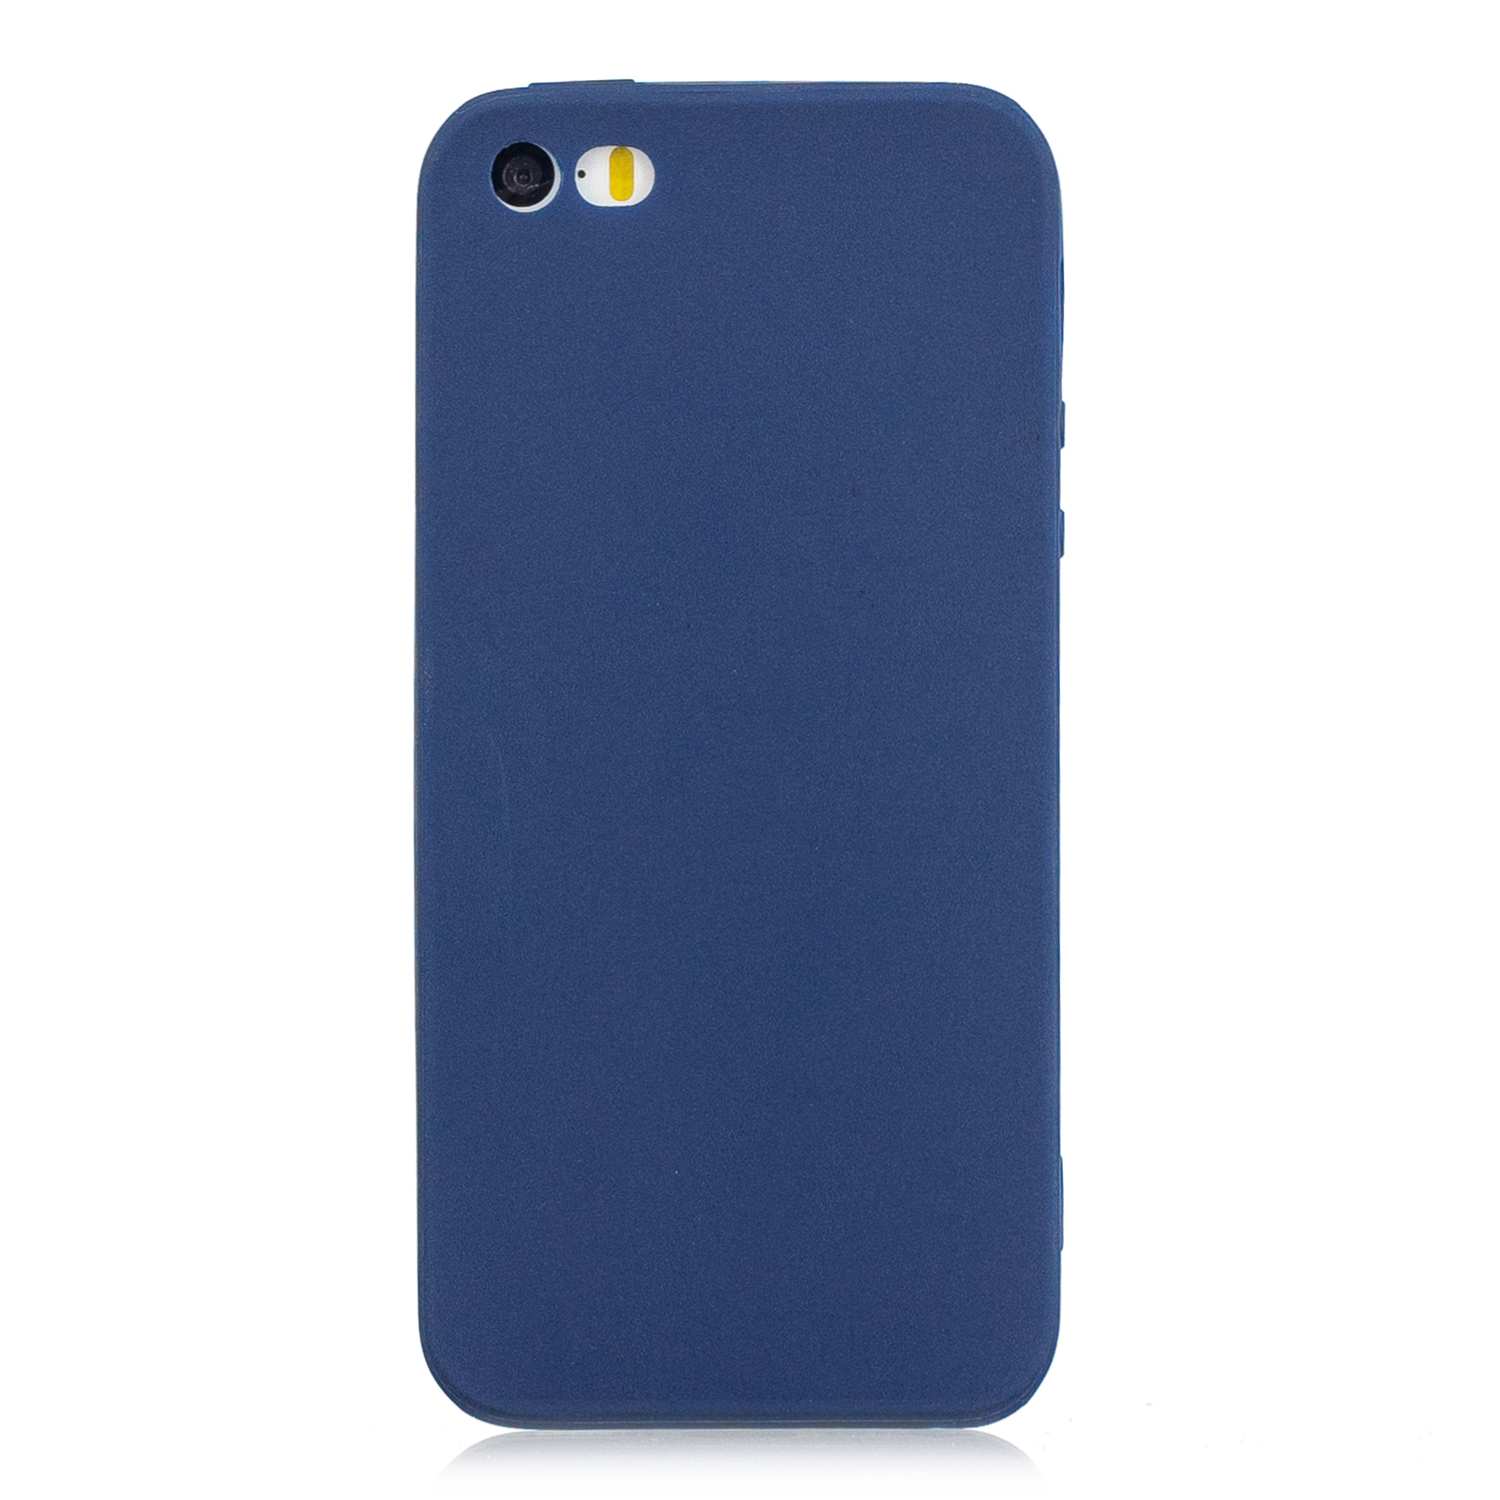 for iPhone 5/5S/SE Lovely Candy Color Matte TPU Anti-scratch Non-slip Protective Cover Back Case Navy